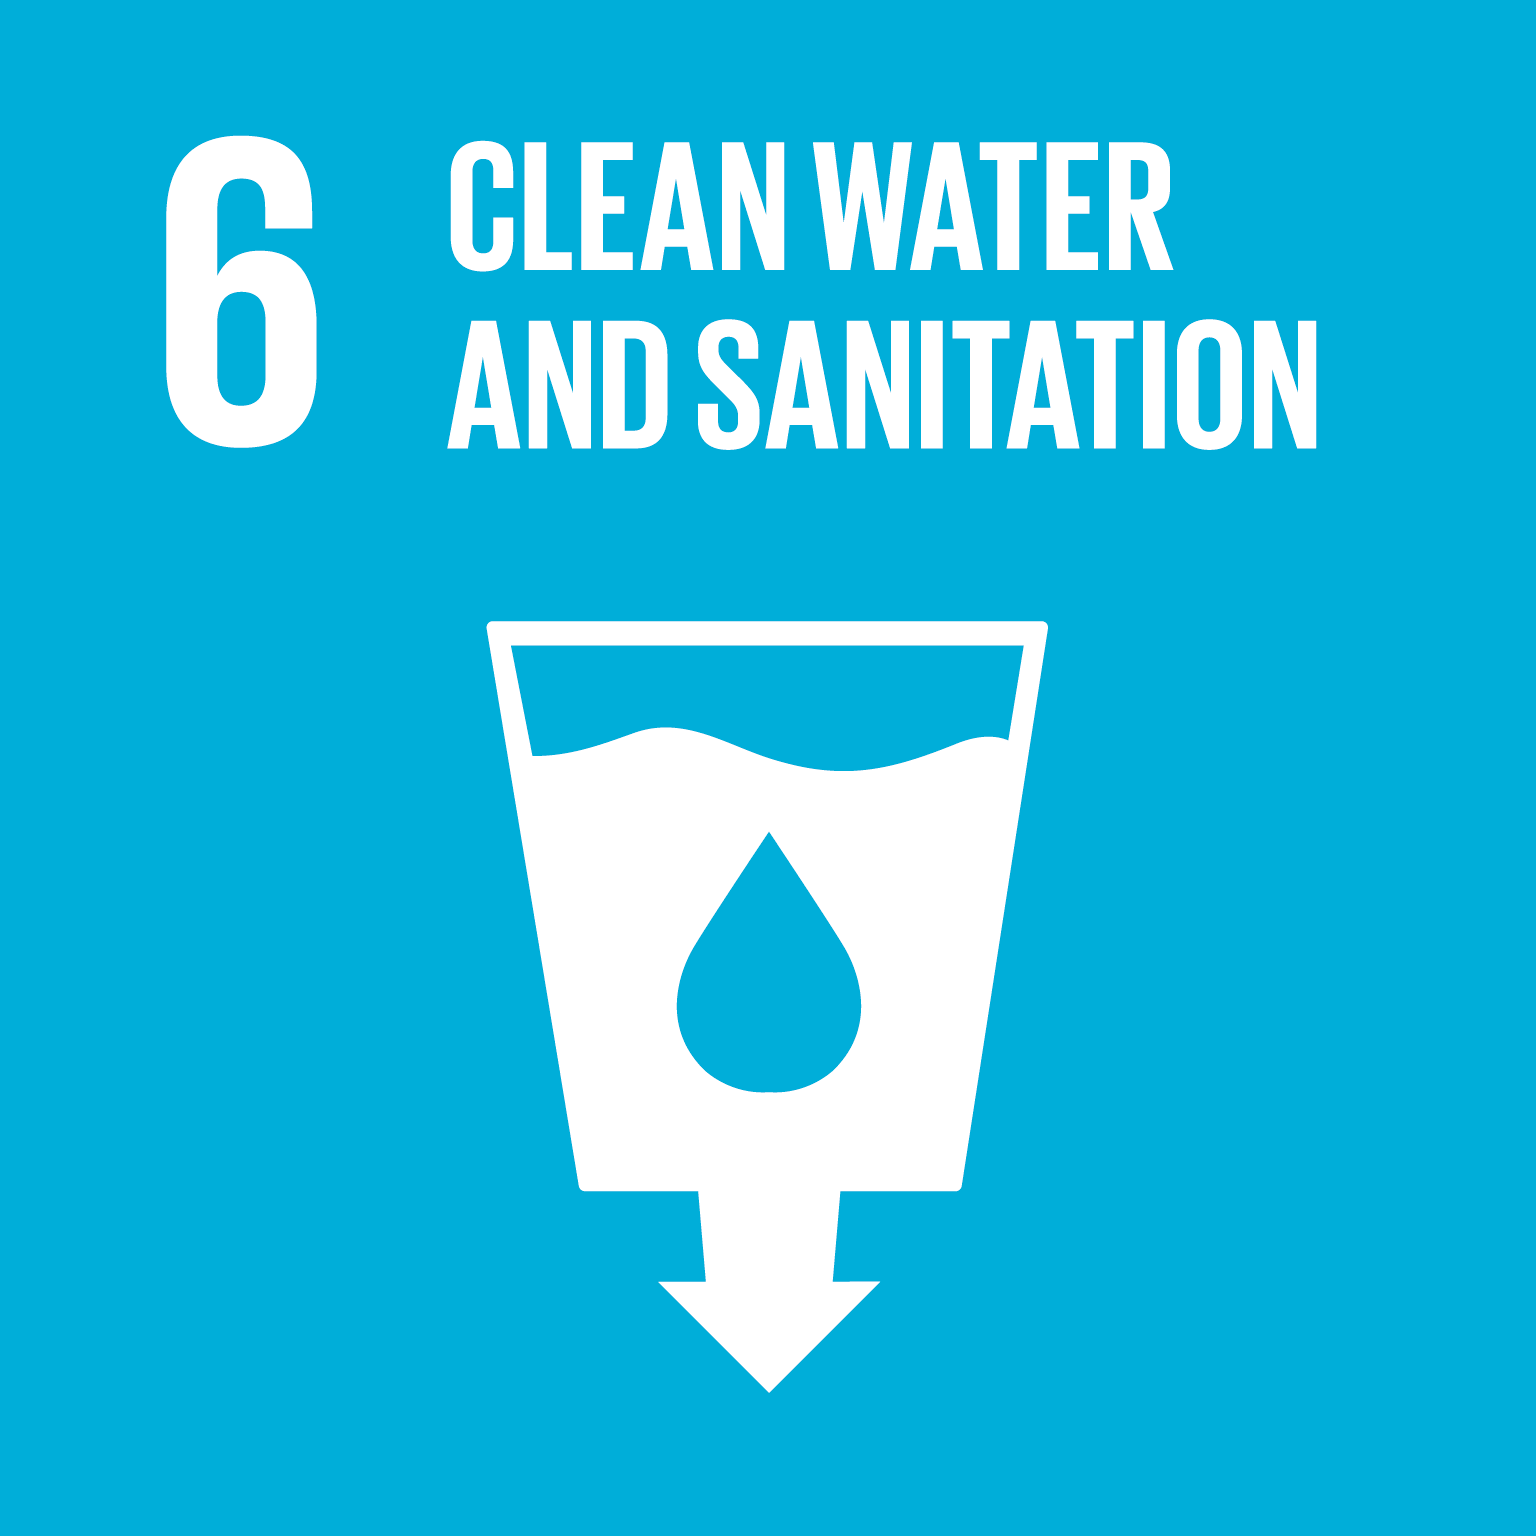 Clean Water and Sanitation - Ensure access to water and sanitation for all